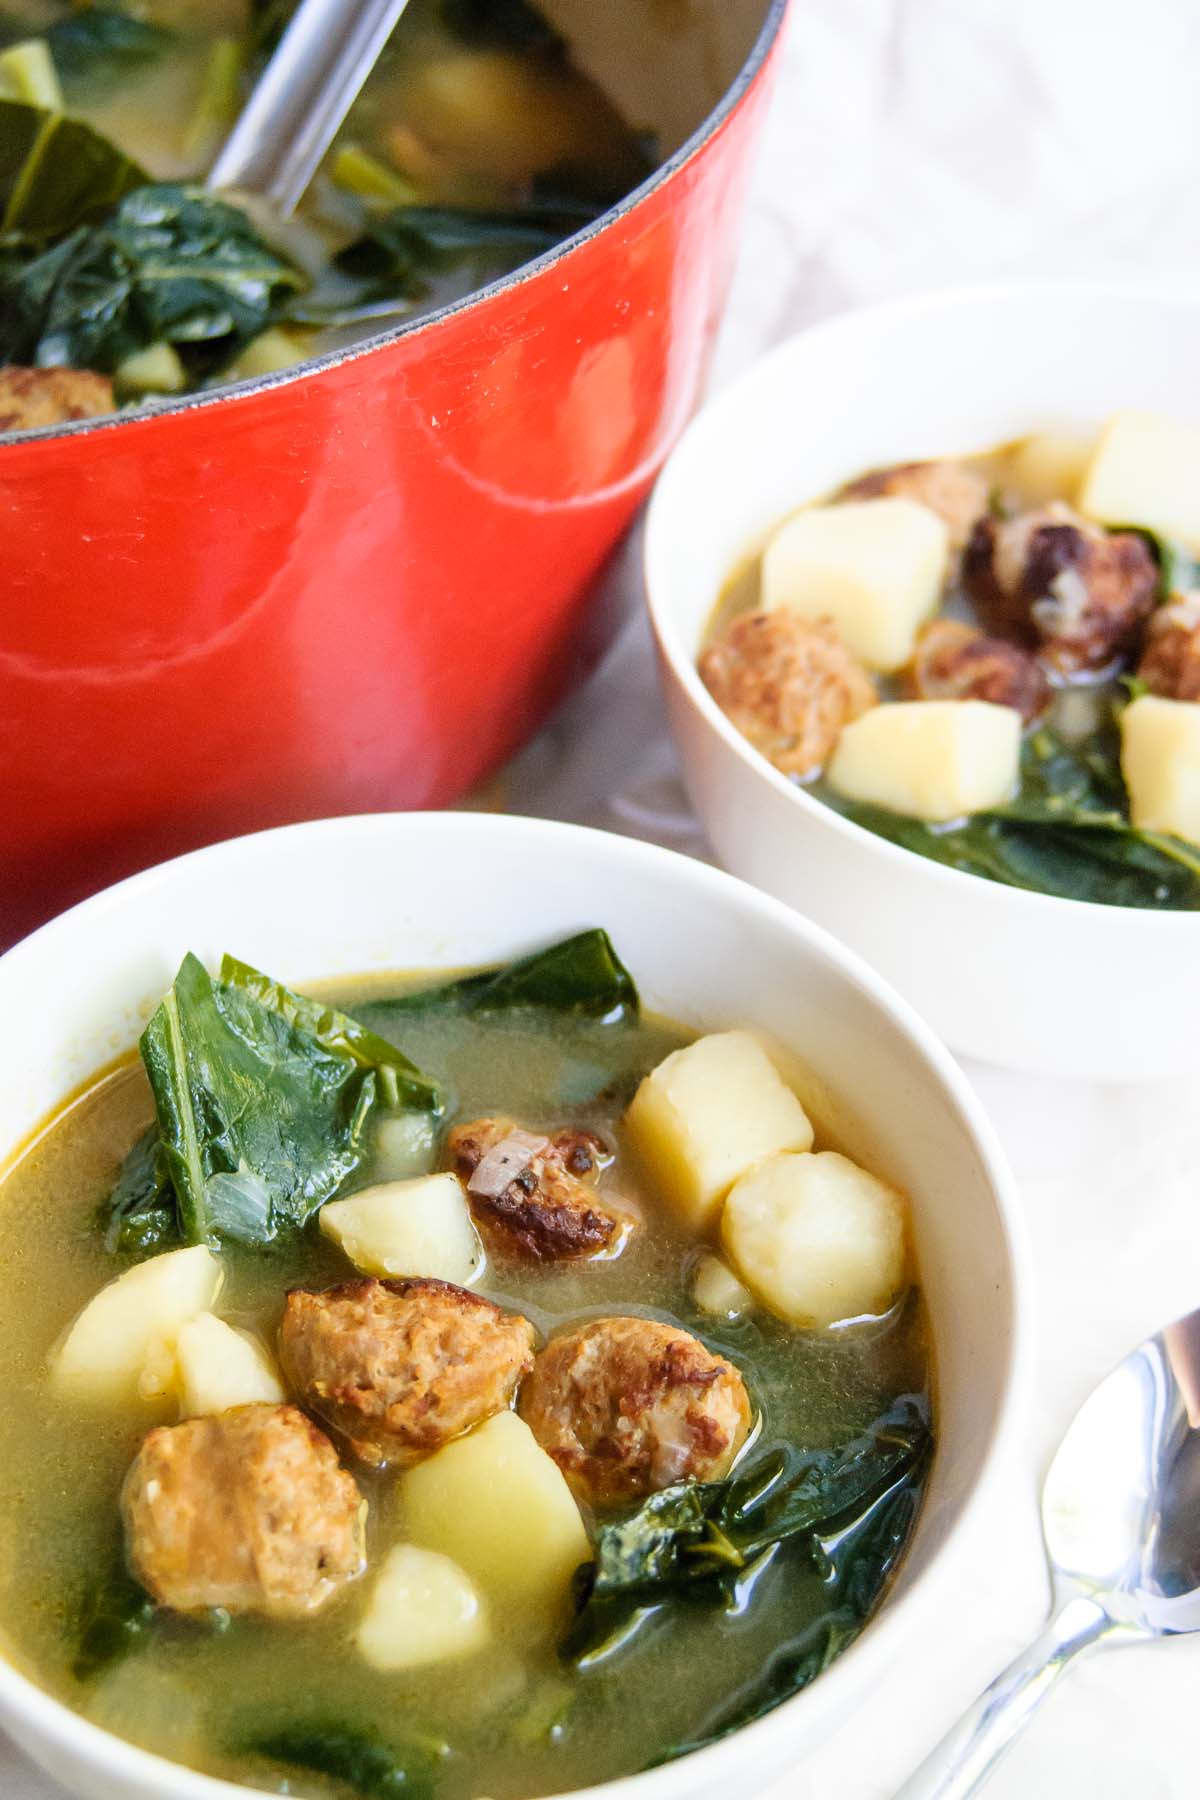 Hearty sausages, potatoes and collard greens are here to fill you up and warm your soul in this Portuguese Caldo Verde Soup recipe! One pot, easy to make and great as leftovers for the week!